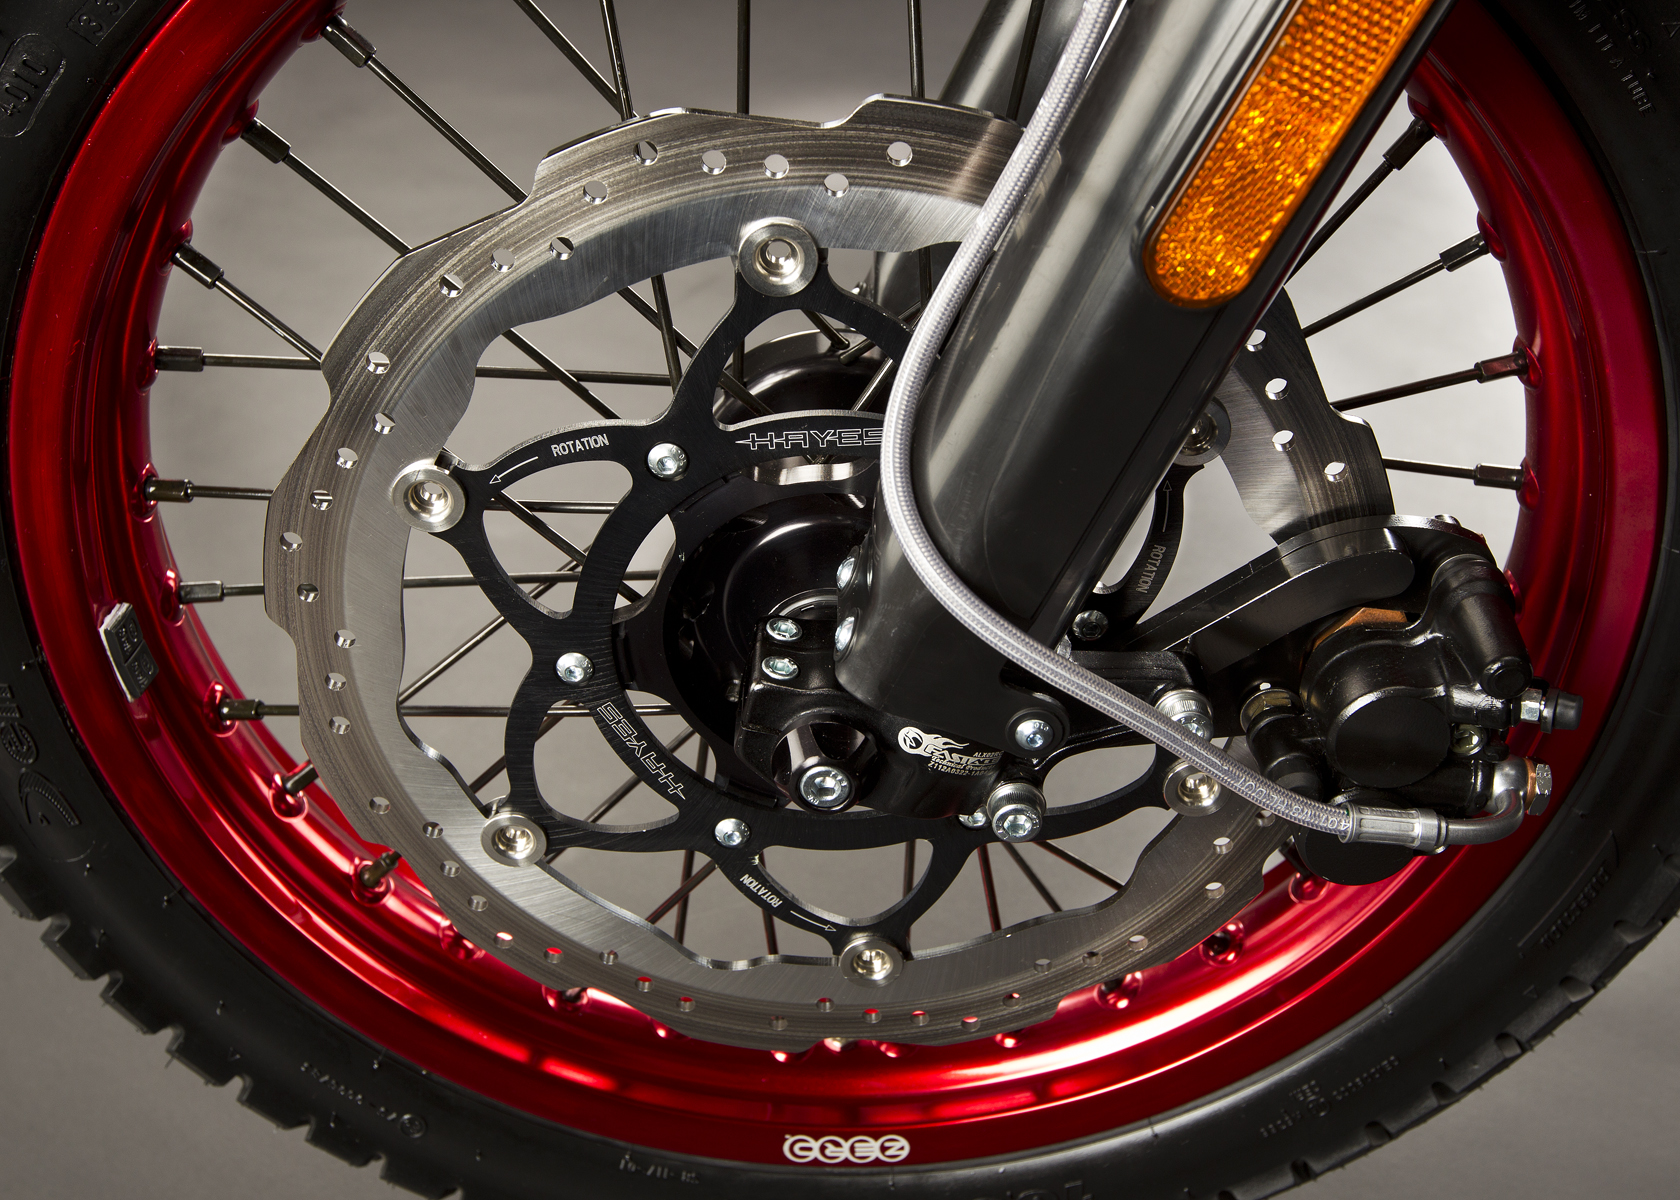 2011 Zero DS Electric Motorcycle: Brake